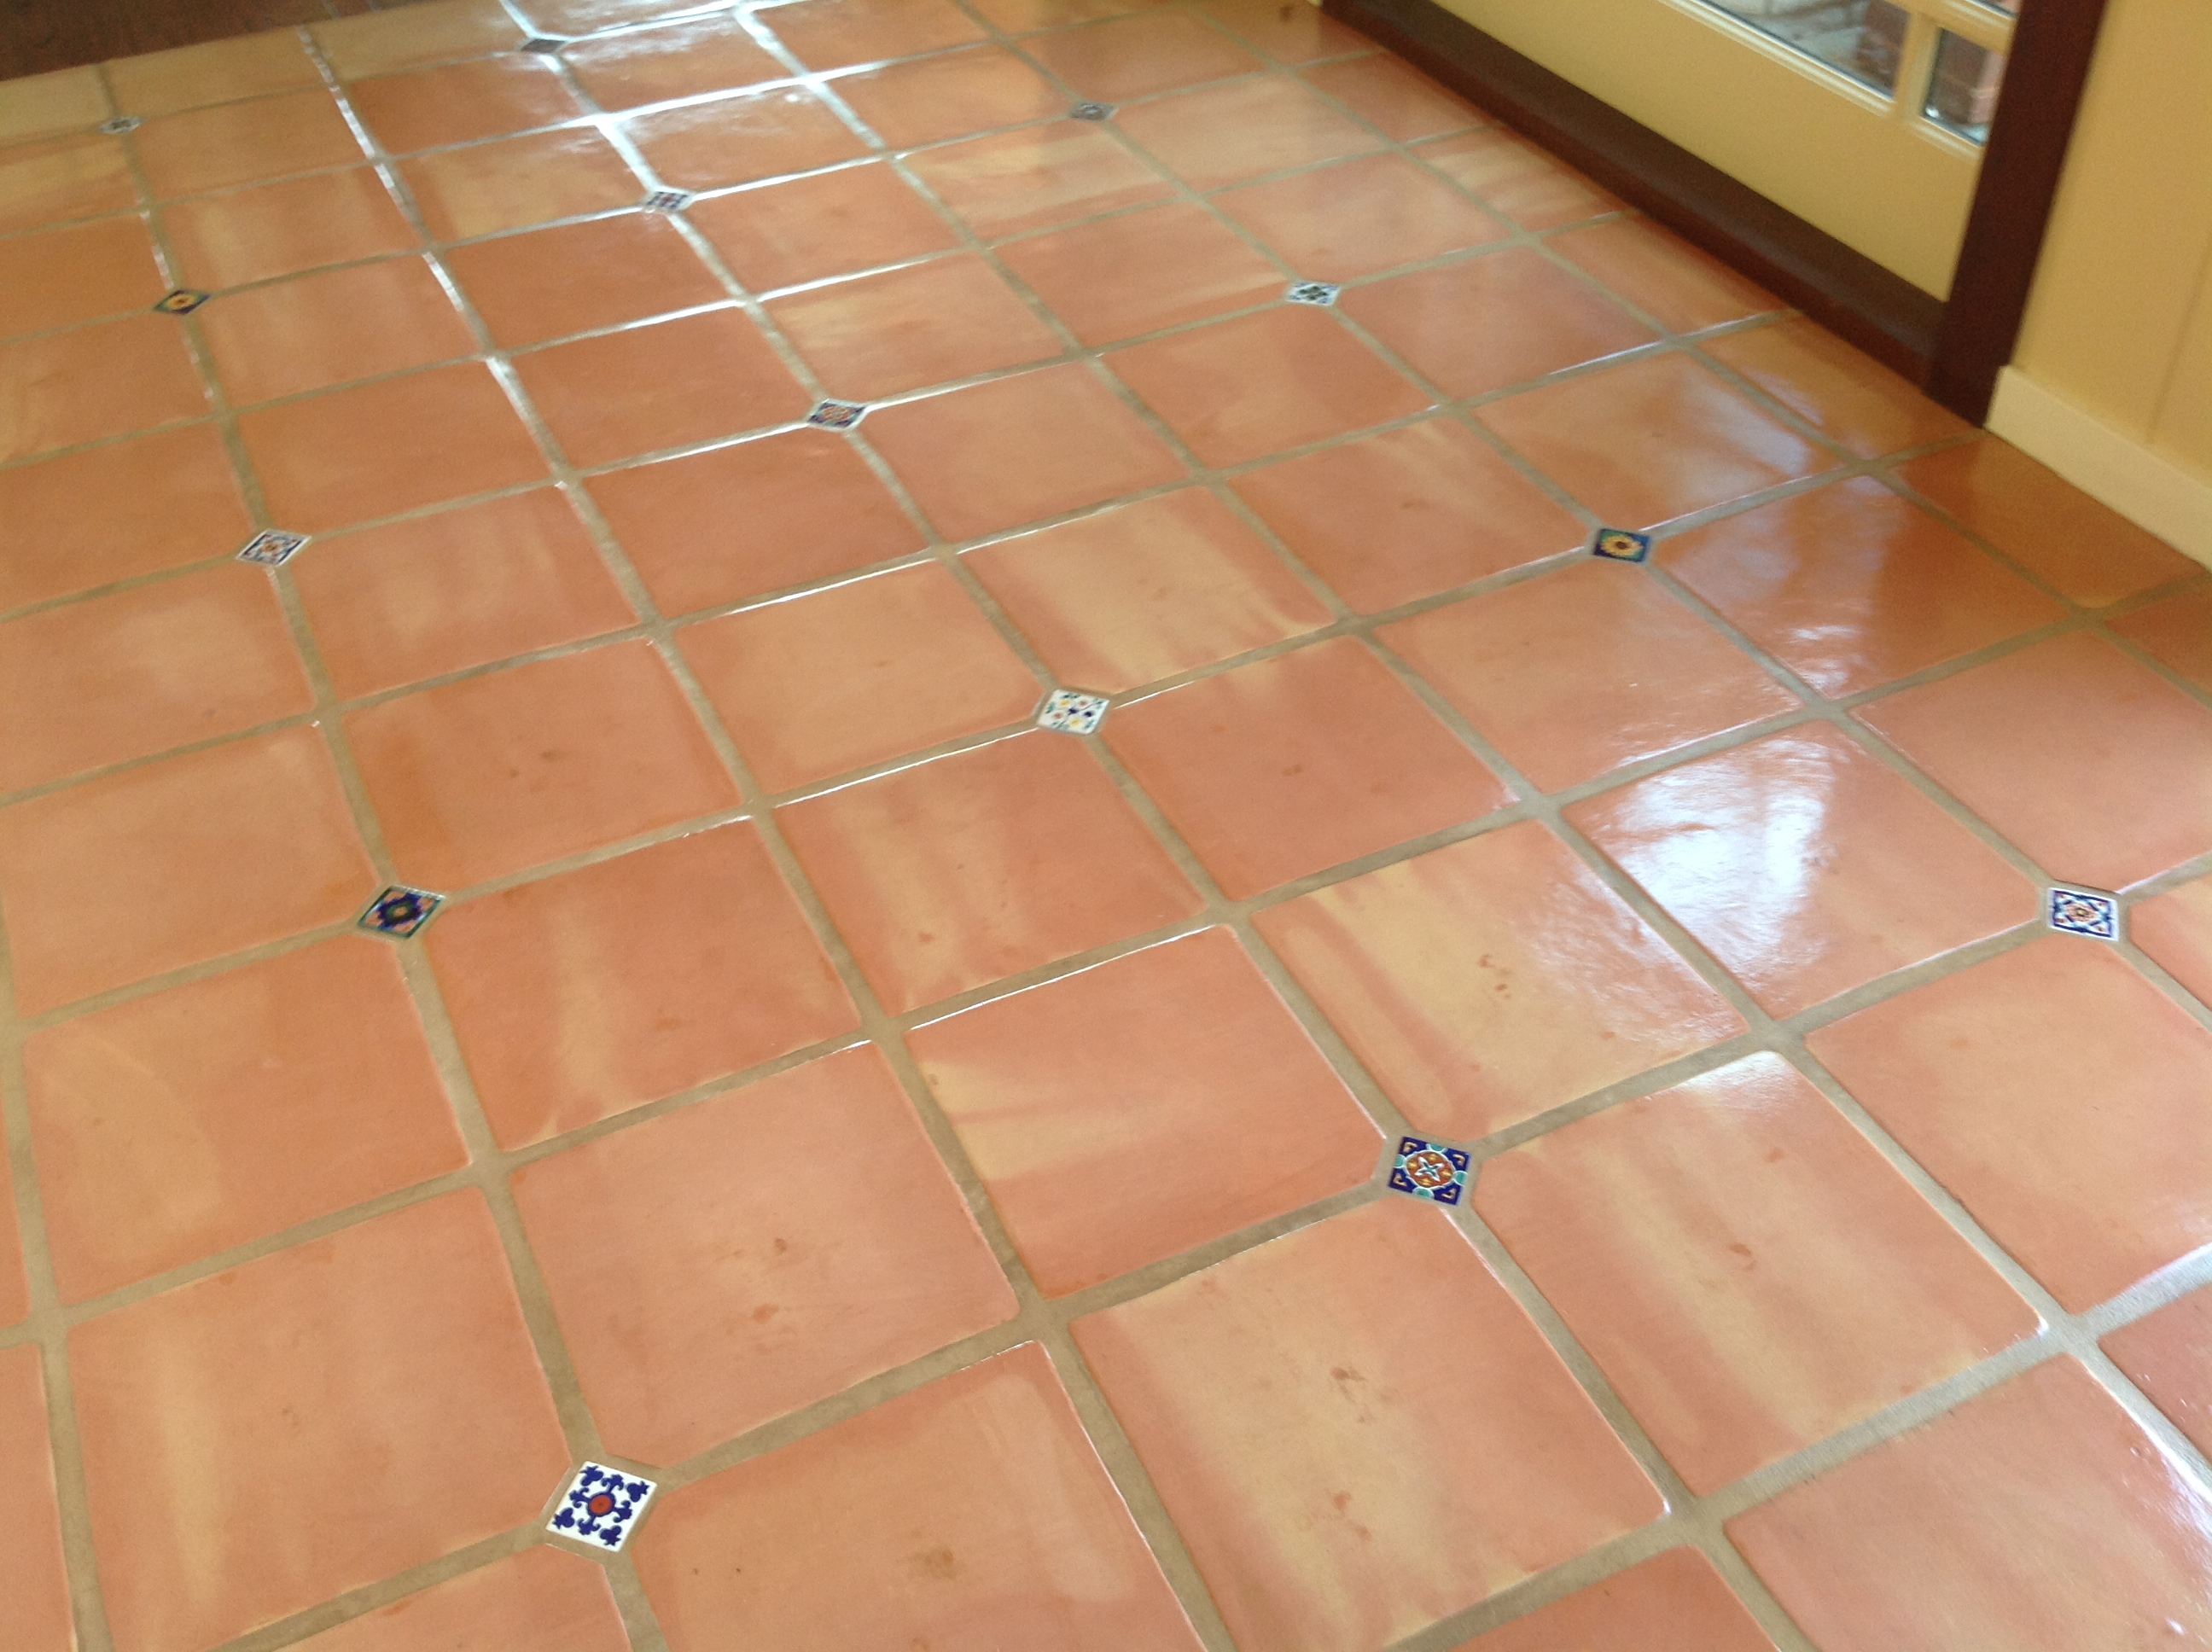 Have an amazing tile floor that you can be proud of | California ...